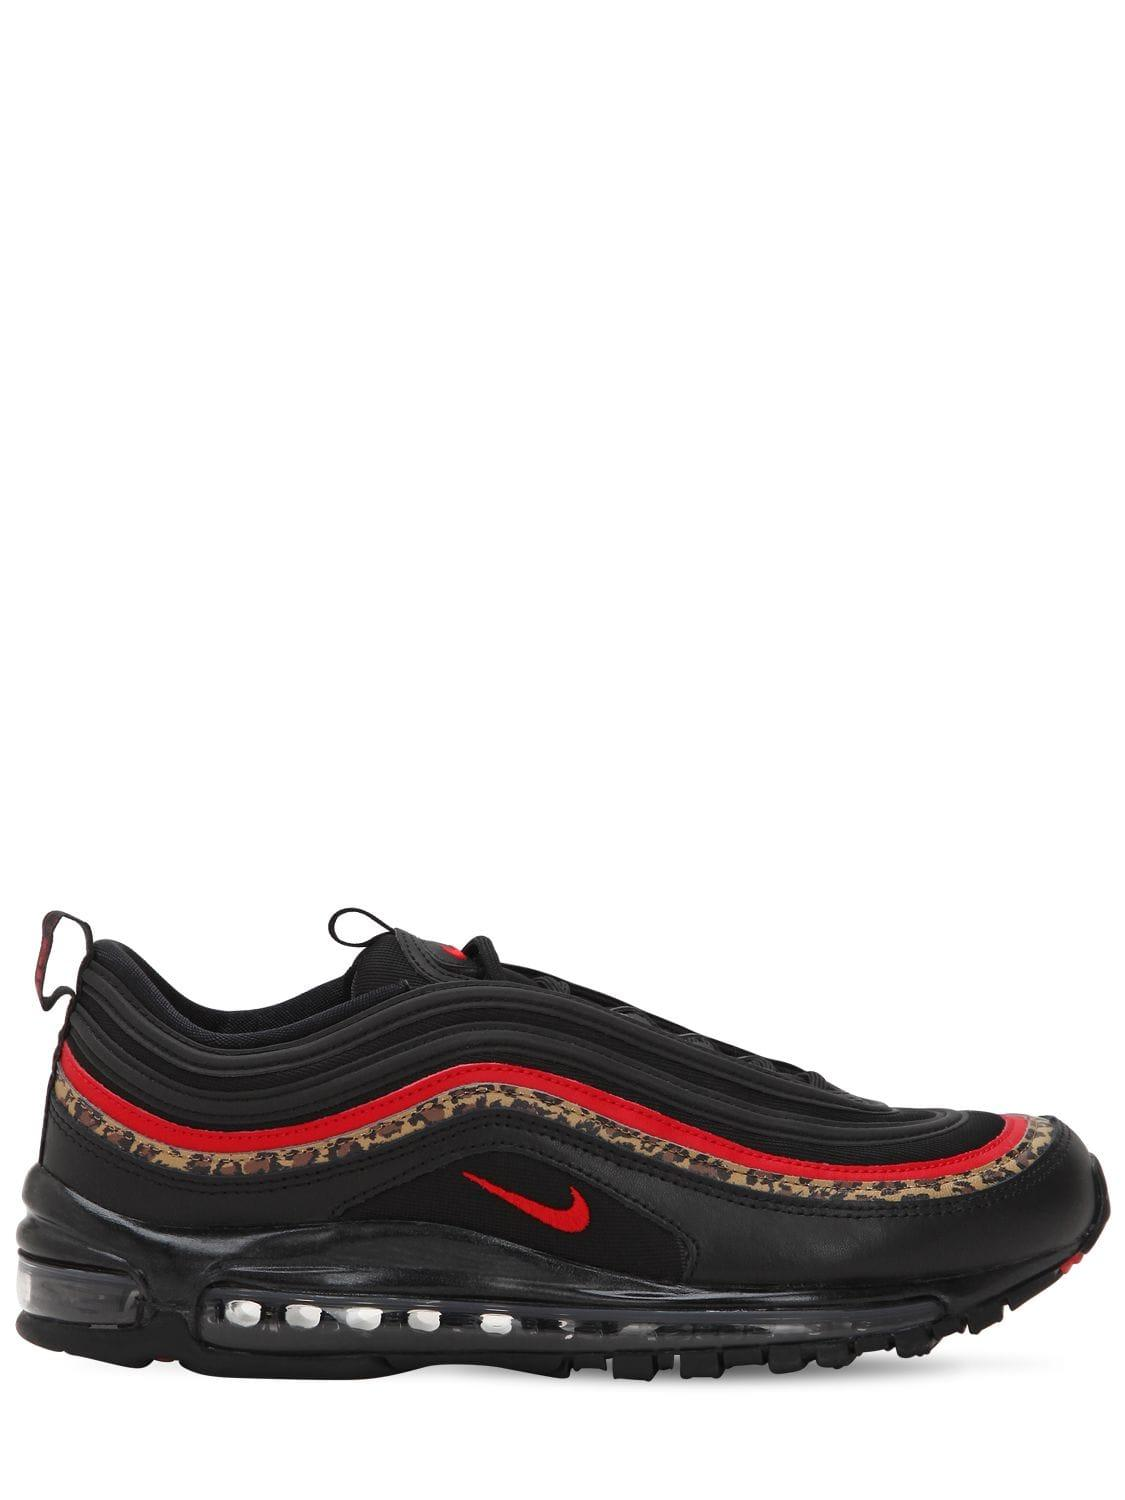 Lyst - Nike Air Max 97 Ap Sneakers in Black 4fe6b094d73